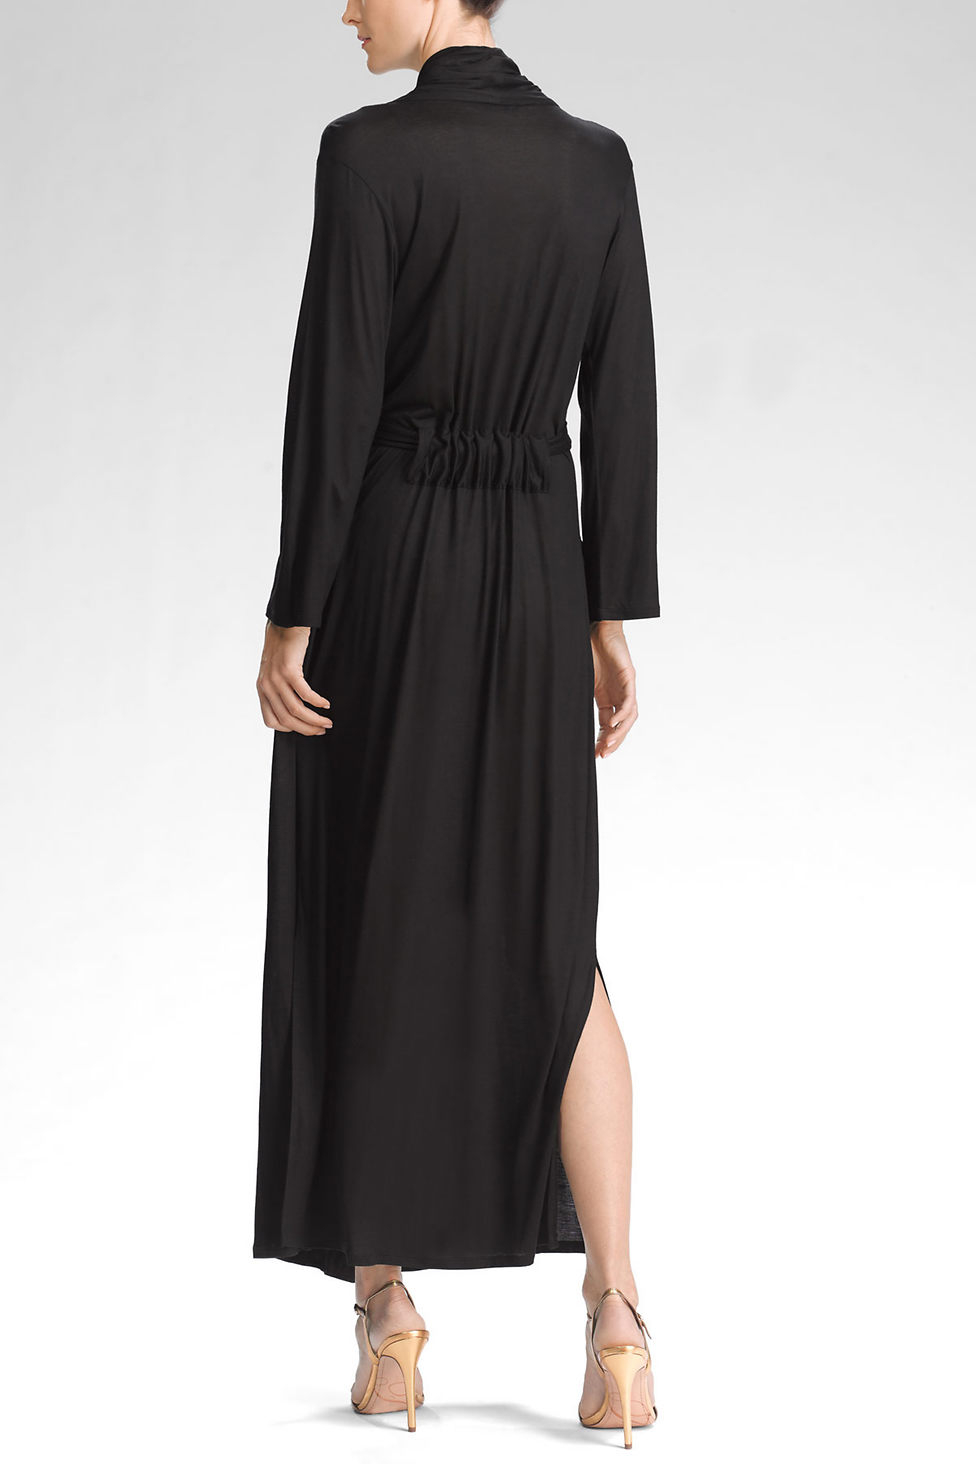 natori charlize robe in black lyst With robe charlise